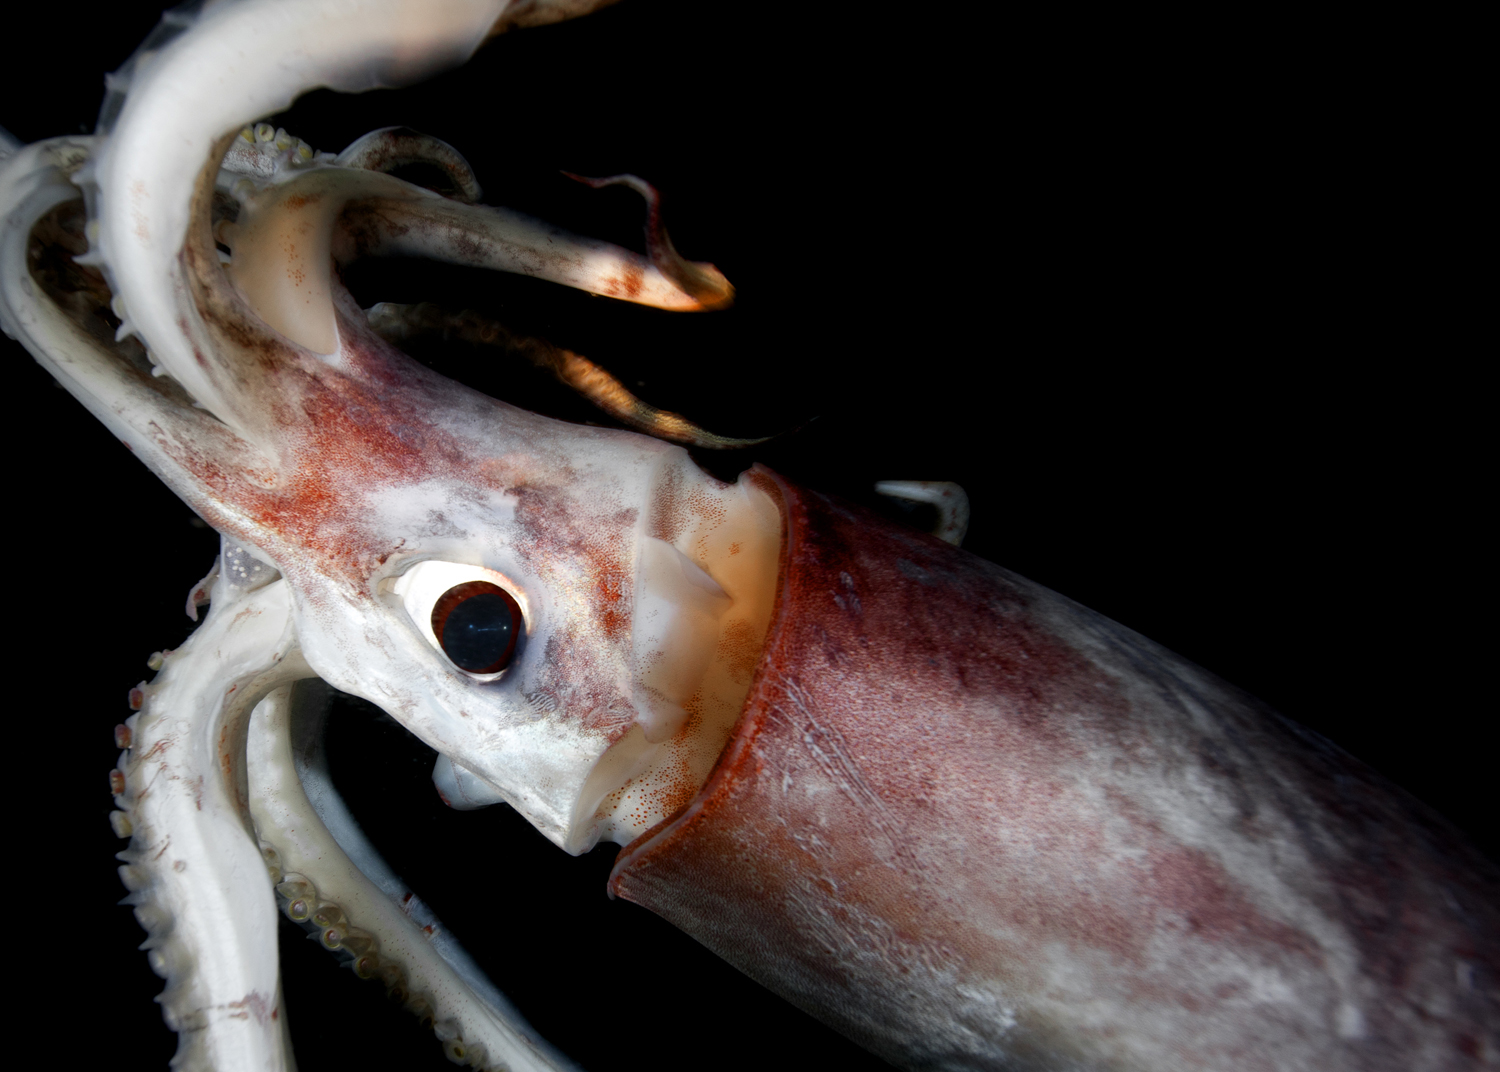 humboldt squid Learn where to find and how to catch big humboldt squid and, after doing so, how to turn them into a gourmet calamari dinner that will delight your guests.